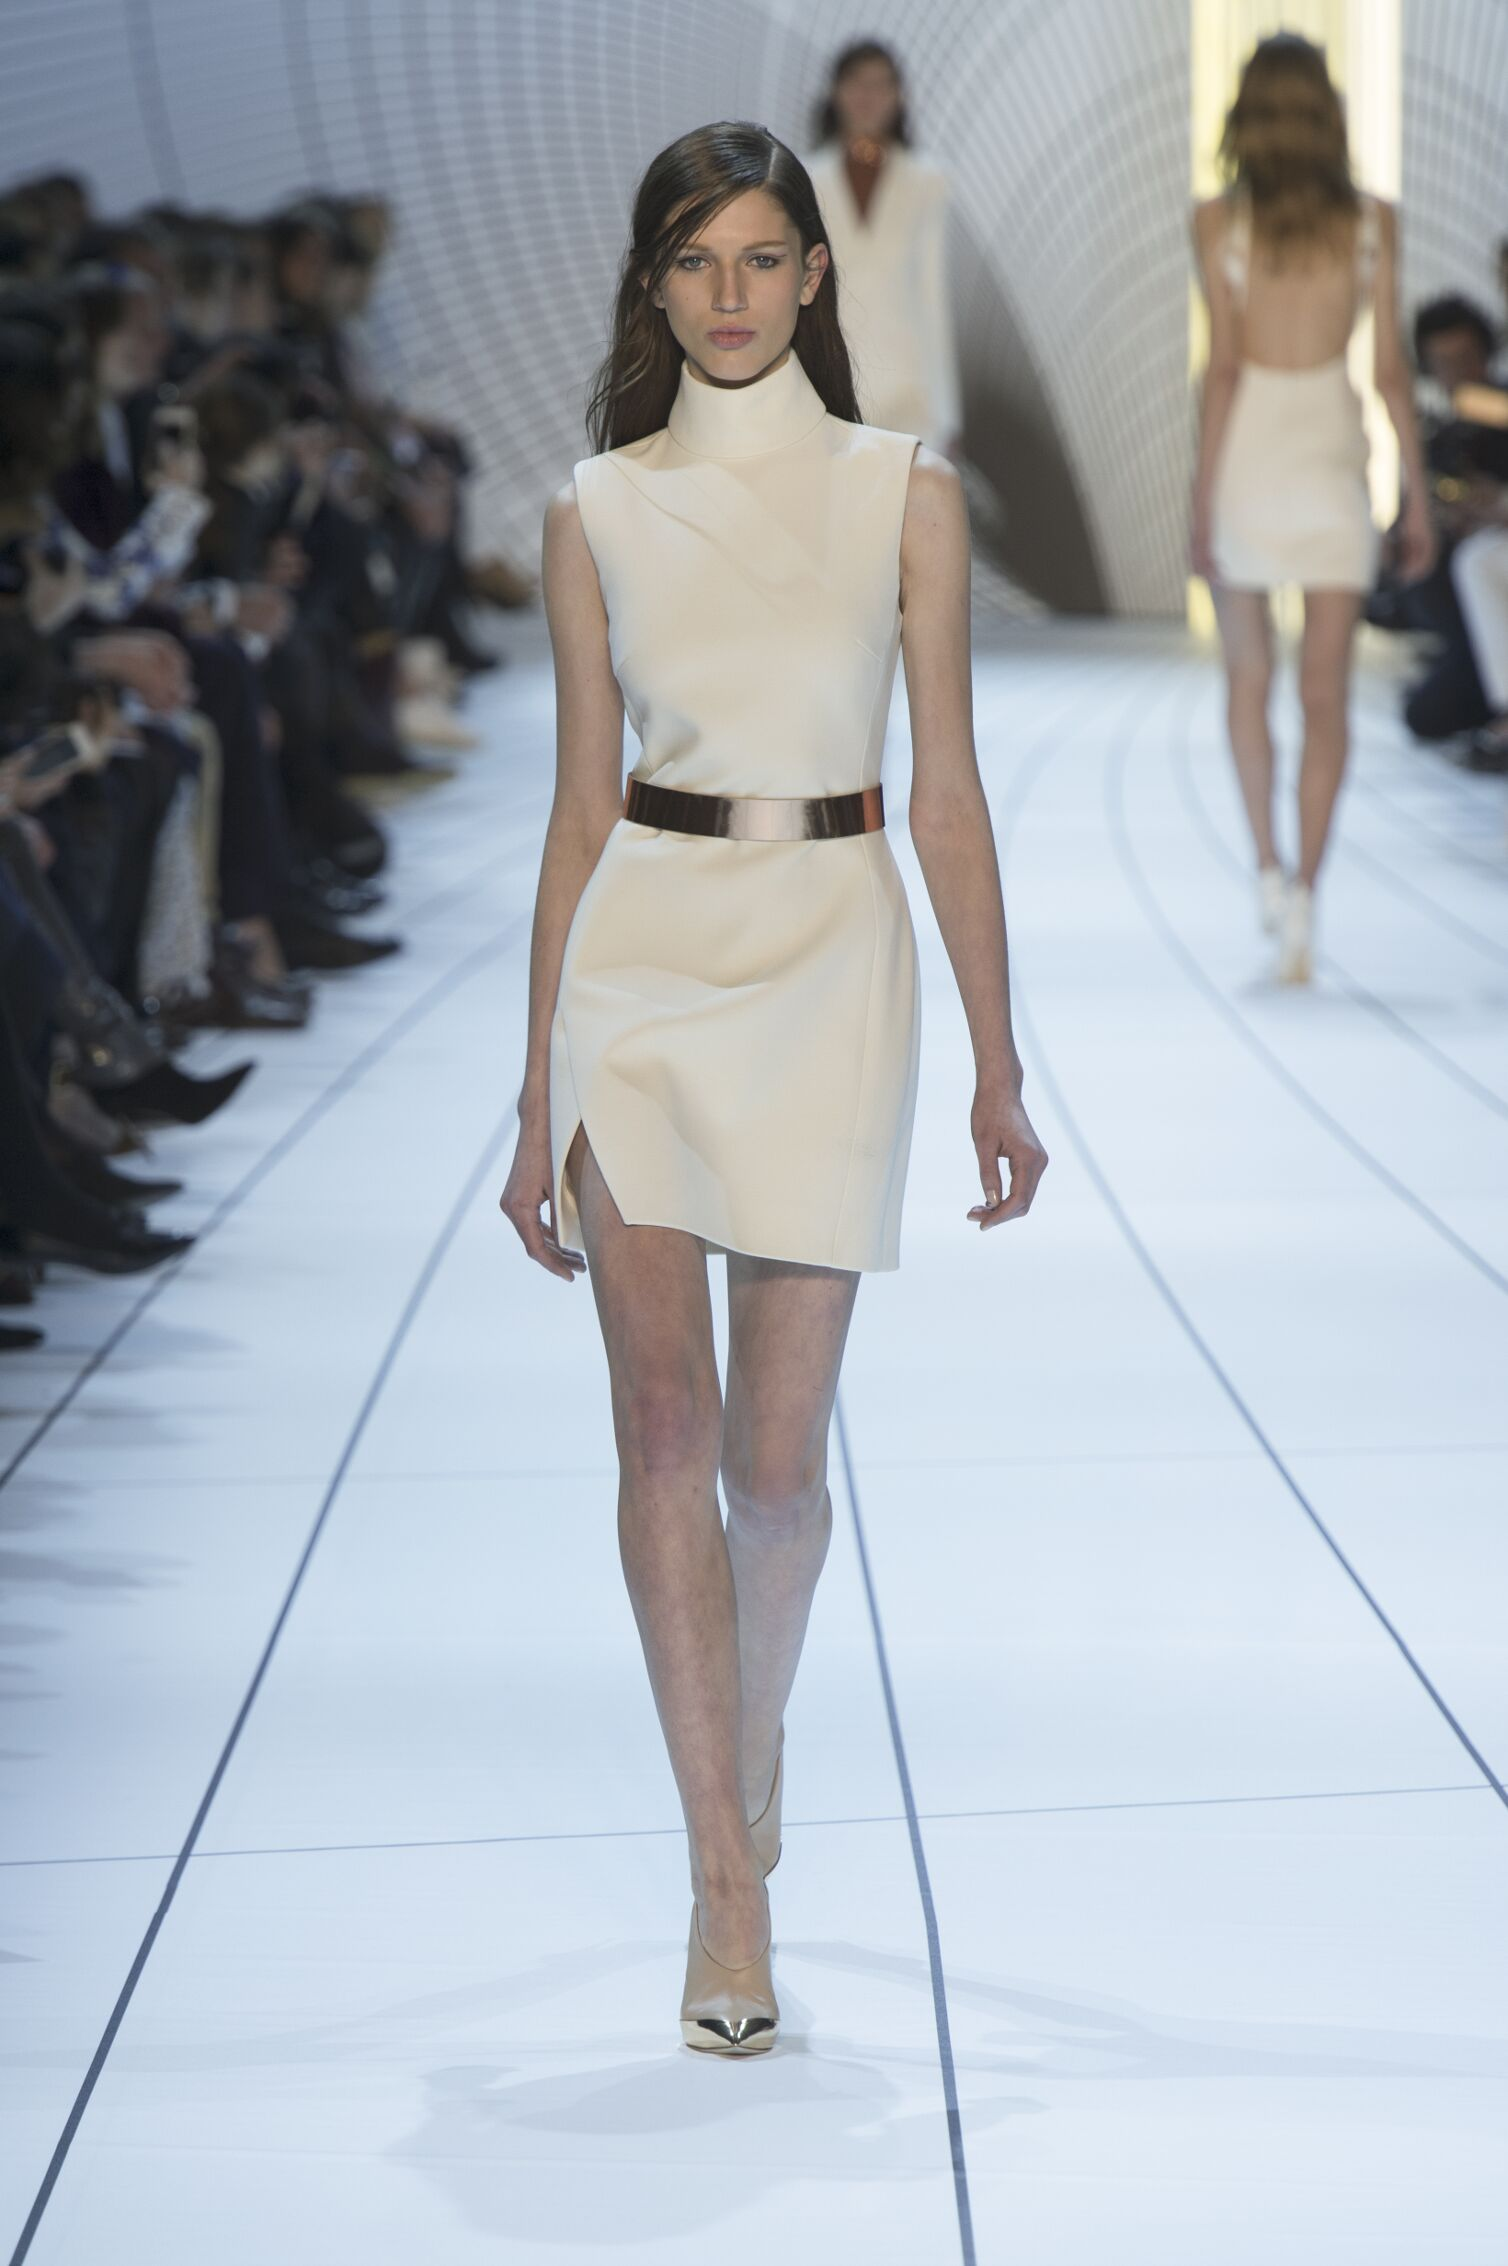 2015 Fashion Woman Model Mugler Collection Catwalk